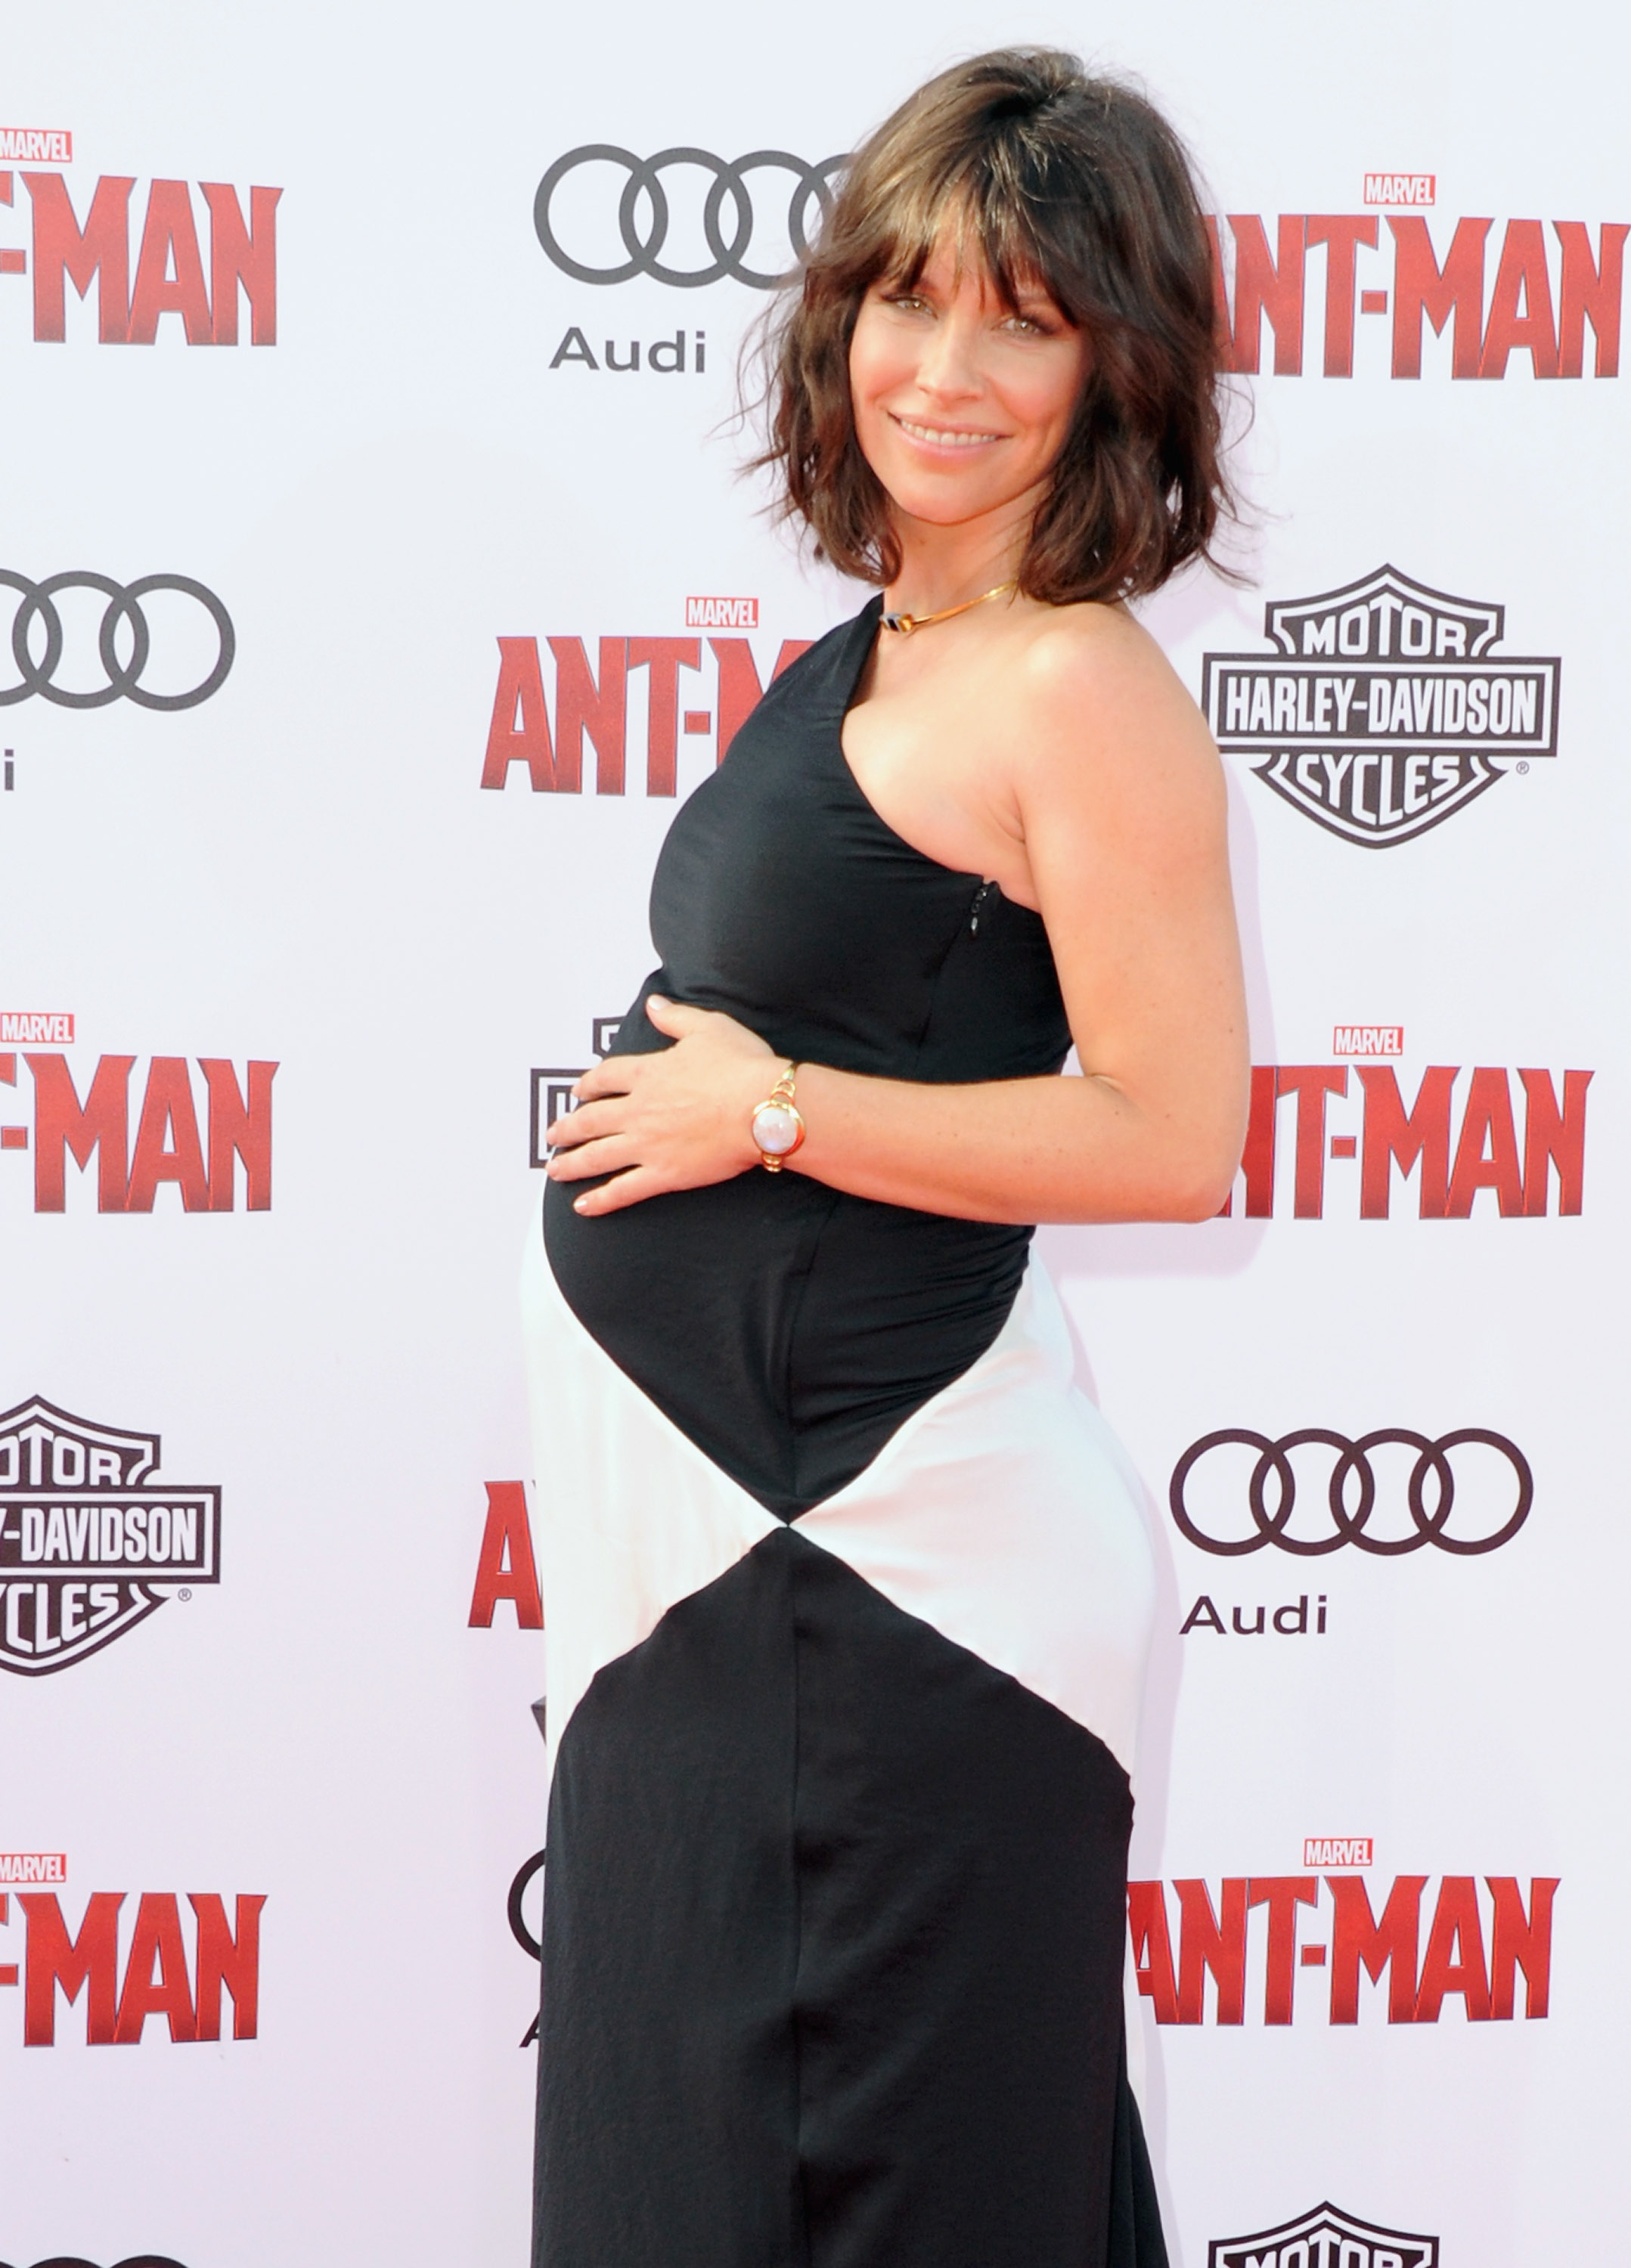 Actress Evangeline Lilly arrives at the Los Angeles Premiere  Ant-Man  at Dolby Theatre on June 29, 2015 in Hollywood, Calif.